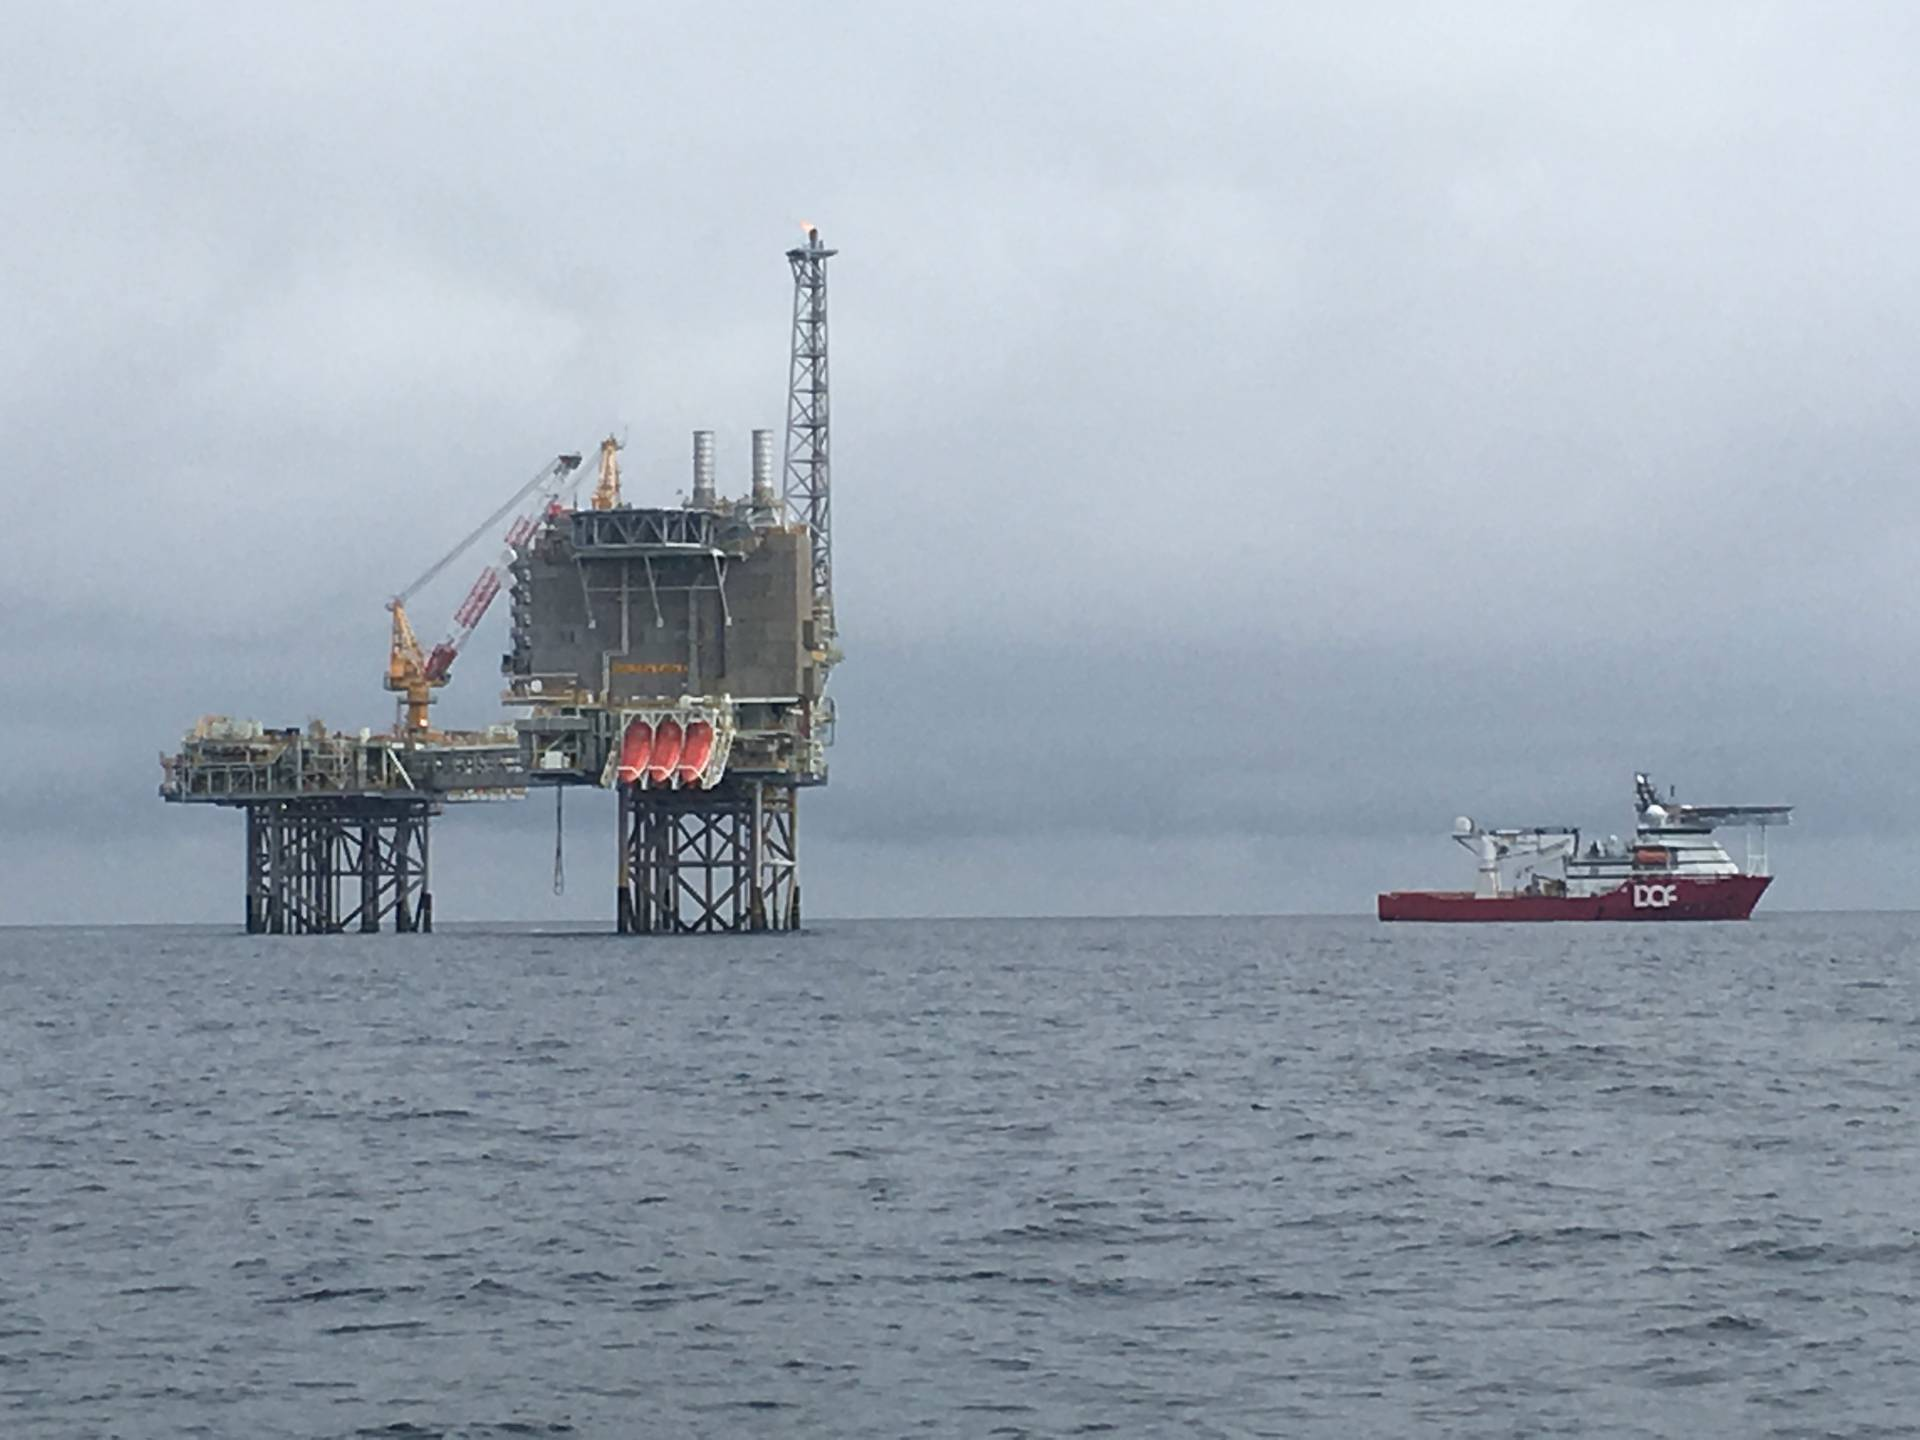 a boat and offshore oil drilling rig